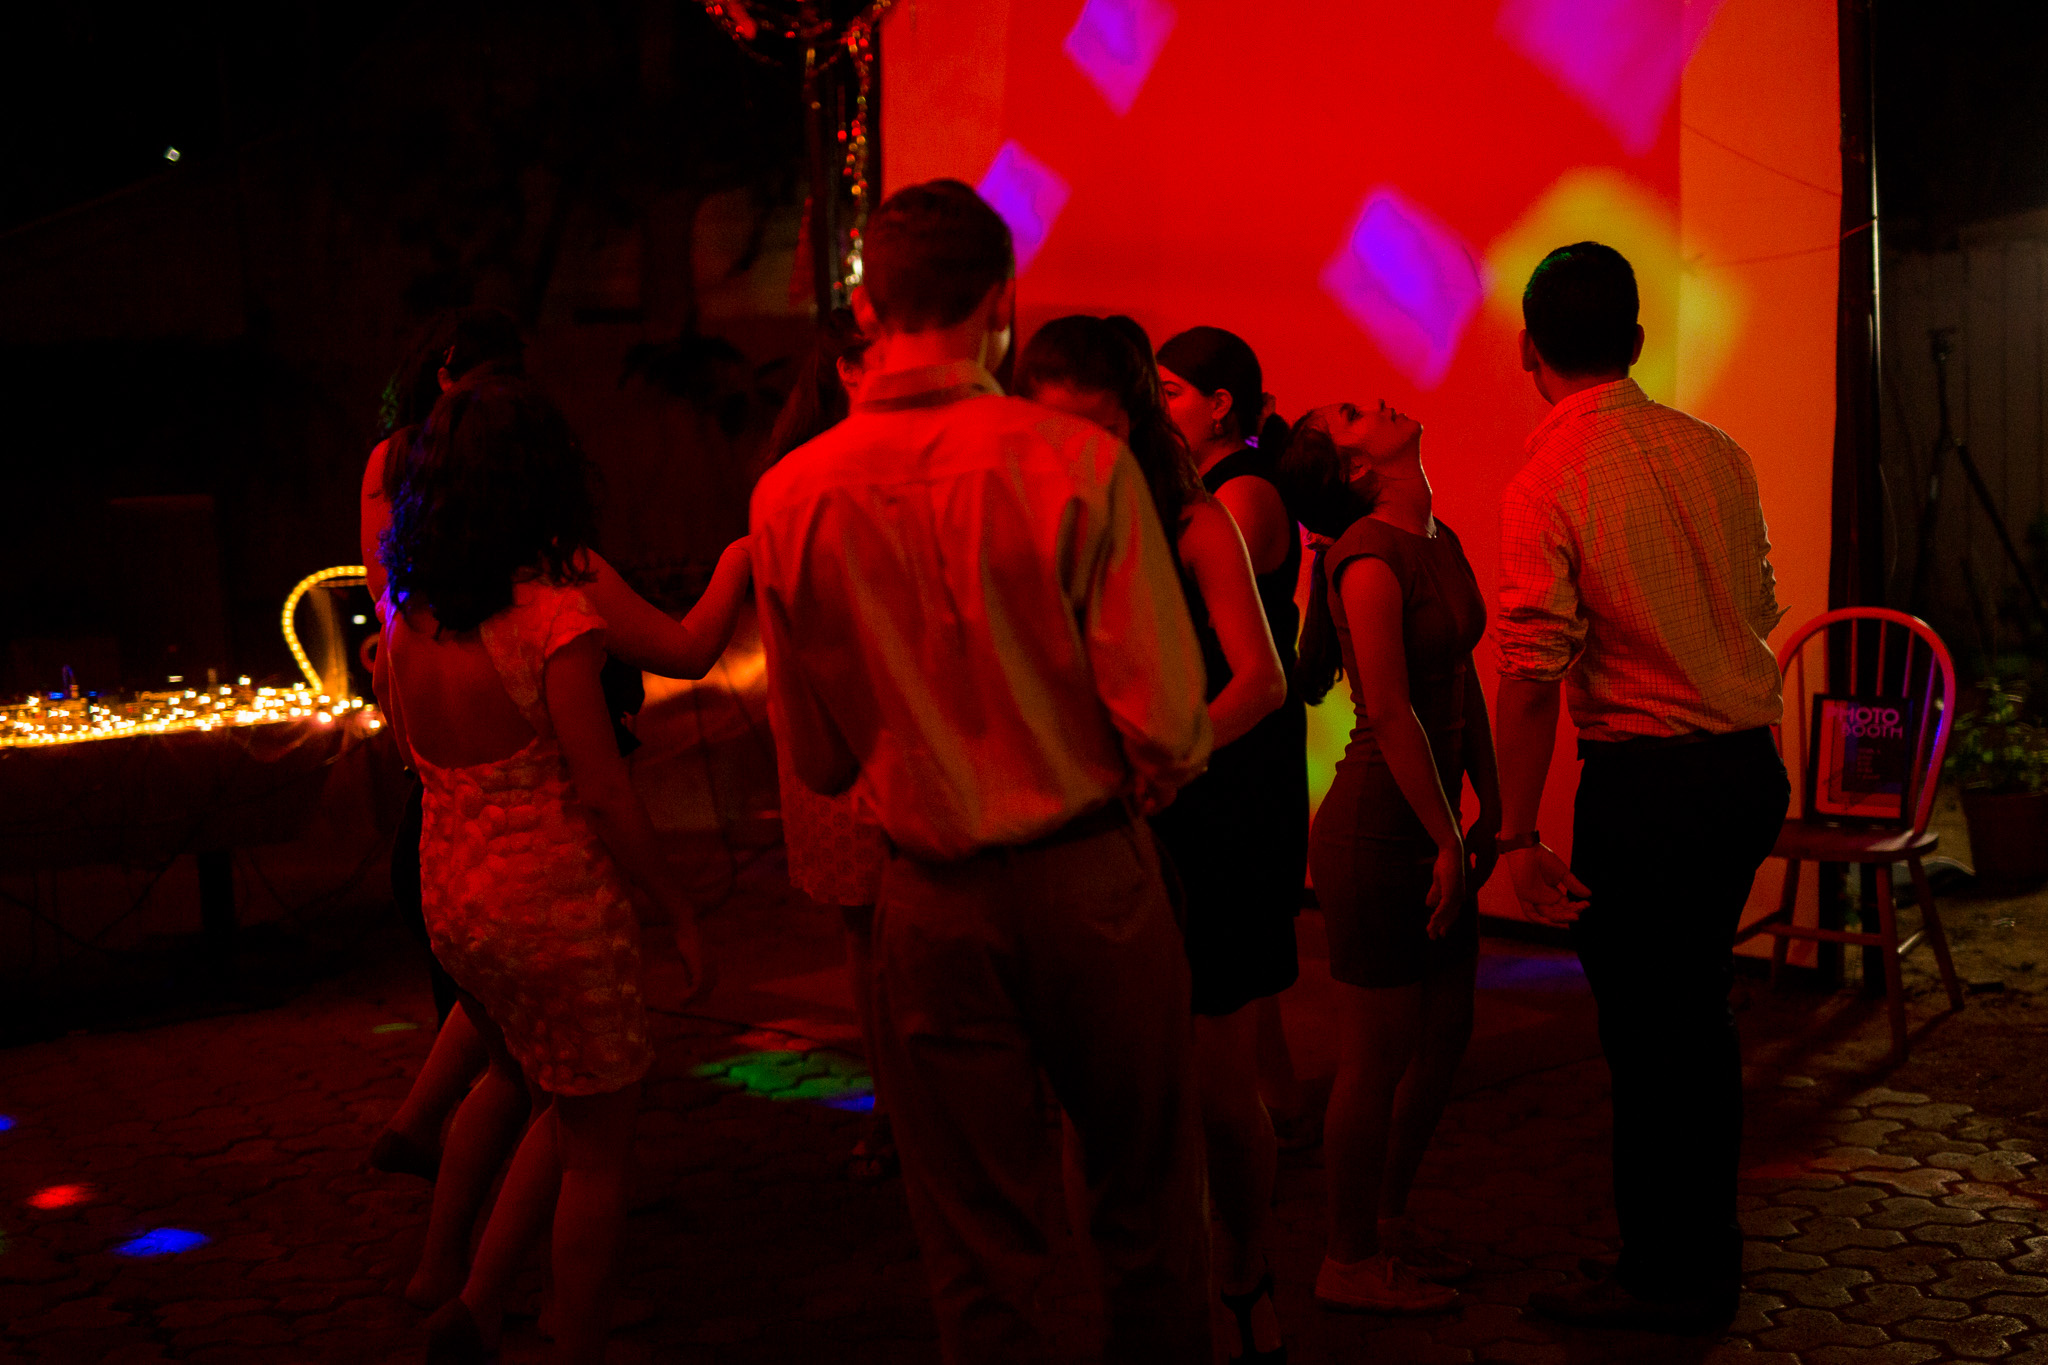 Prom attendees dance during a DJ set featuring many songs by Selena. Photo by Scott Ball.